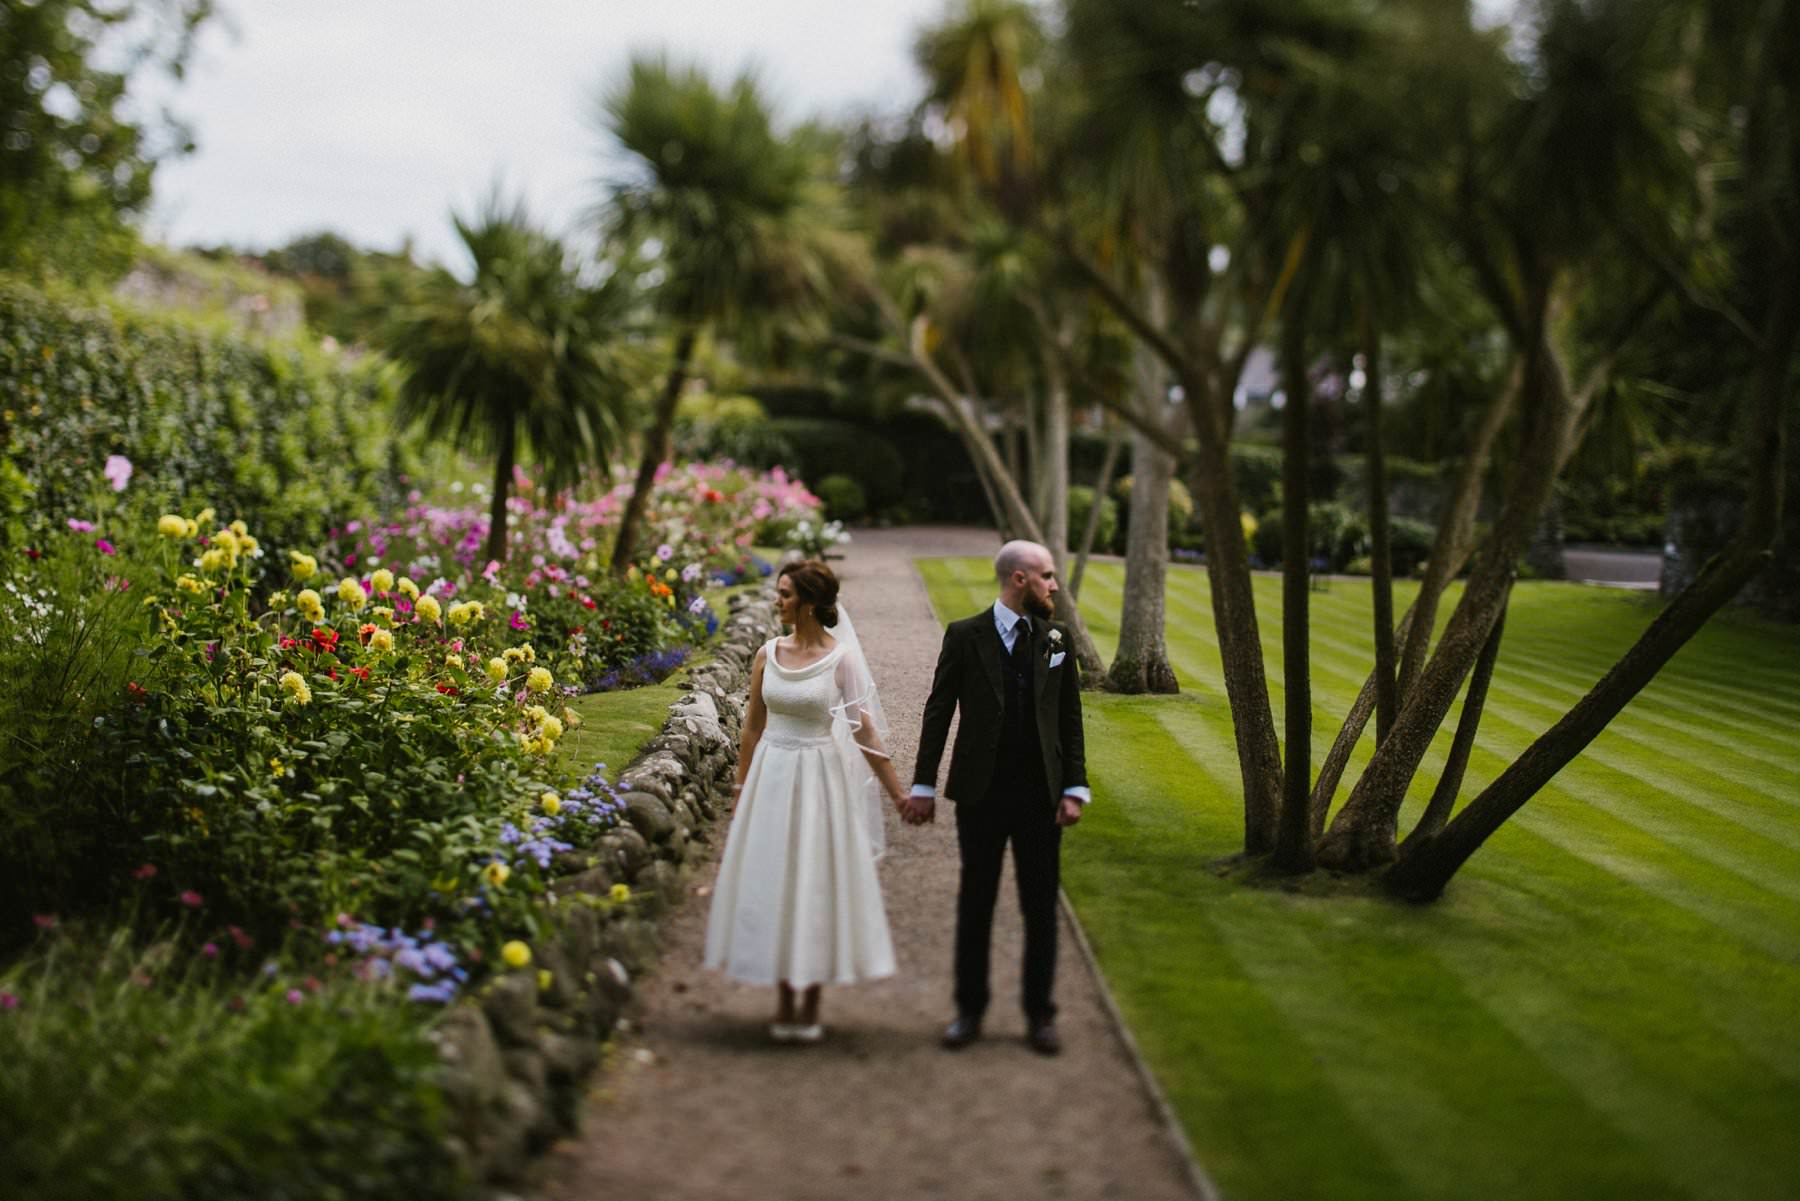 documentary wedding photography at Ballygally castle hotel northern ireland